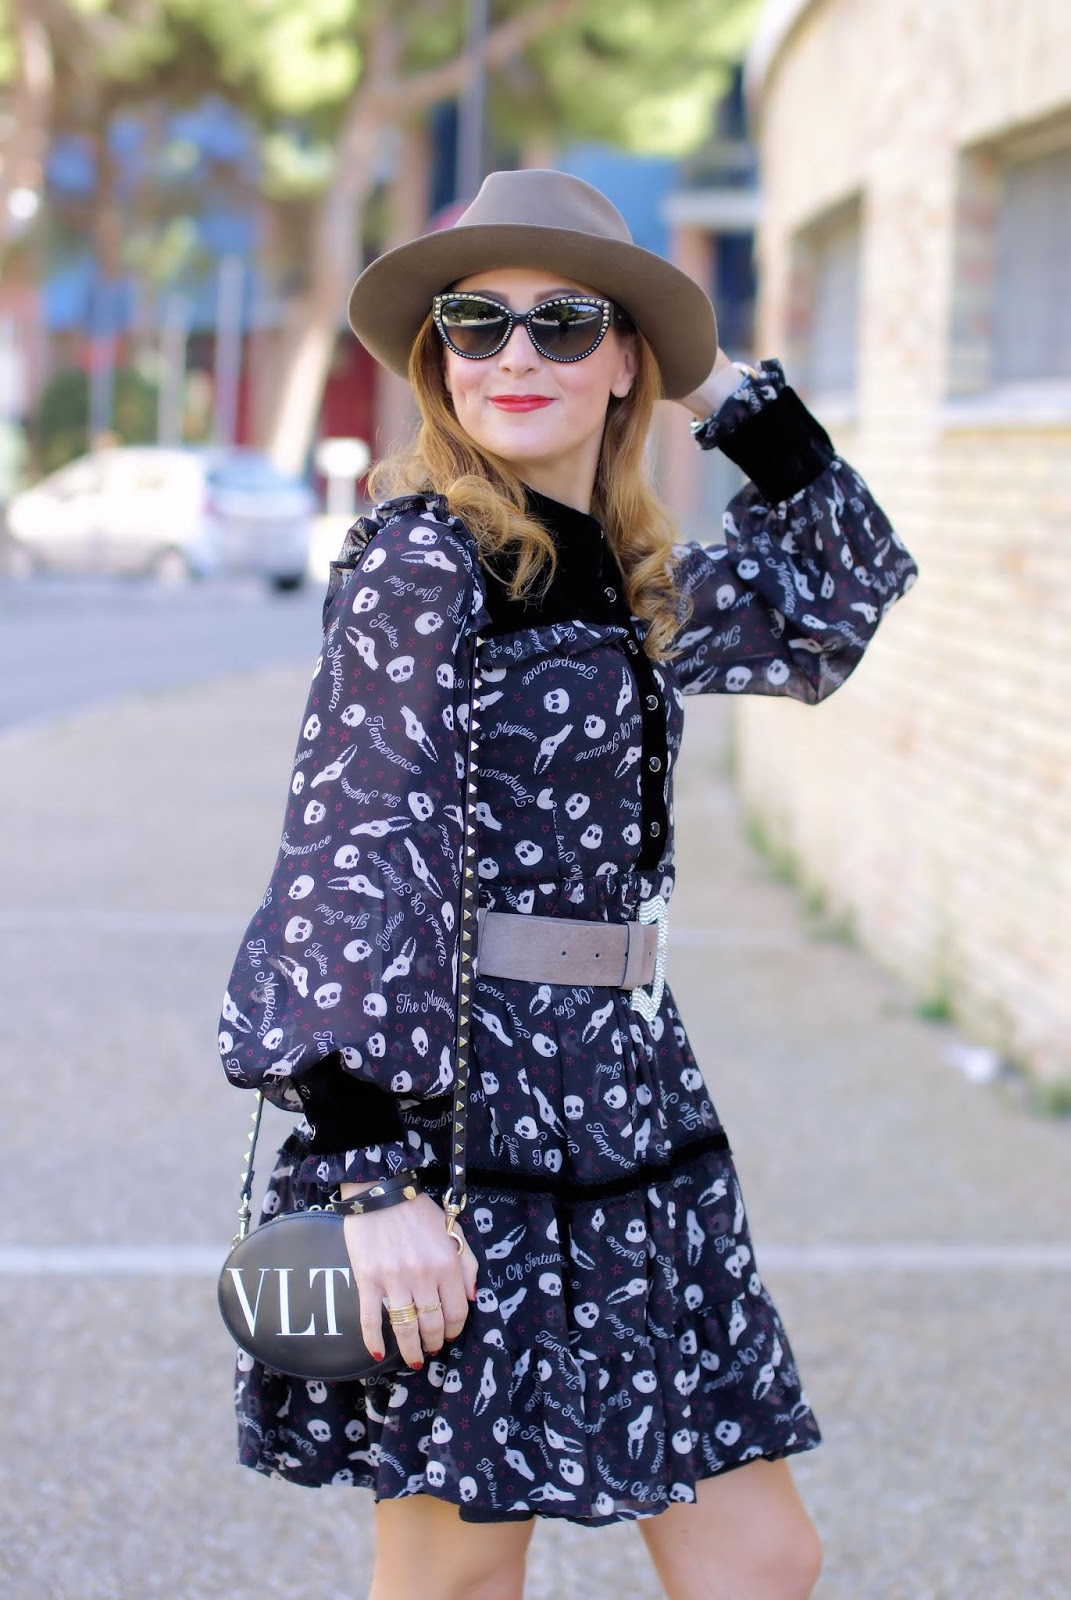 Maggie Sweet dress, VLTN bag on Fashion and Cookies fashion blog, fashion blogger style